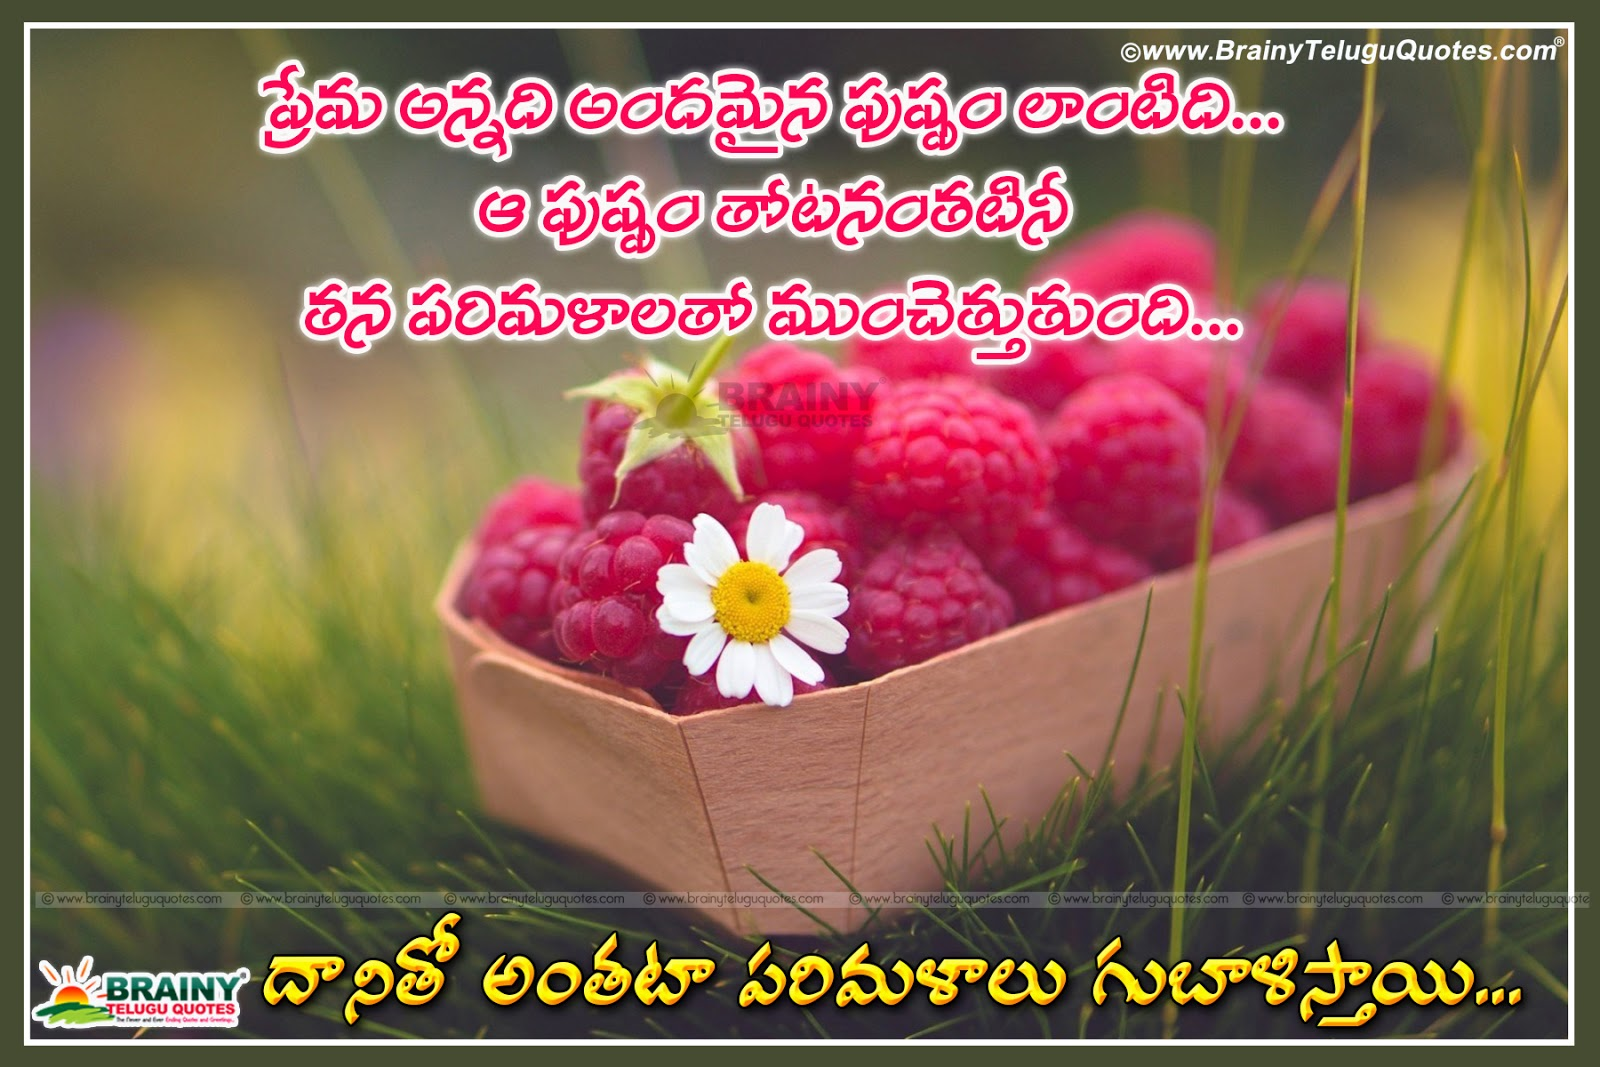 Here Is Telugu Best Romantic Love Proposals Quotes, - Good Morning Raspberry - HD Wallpaper